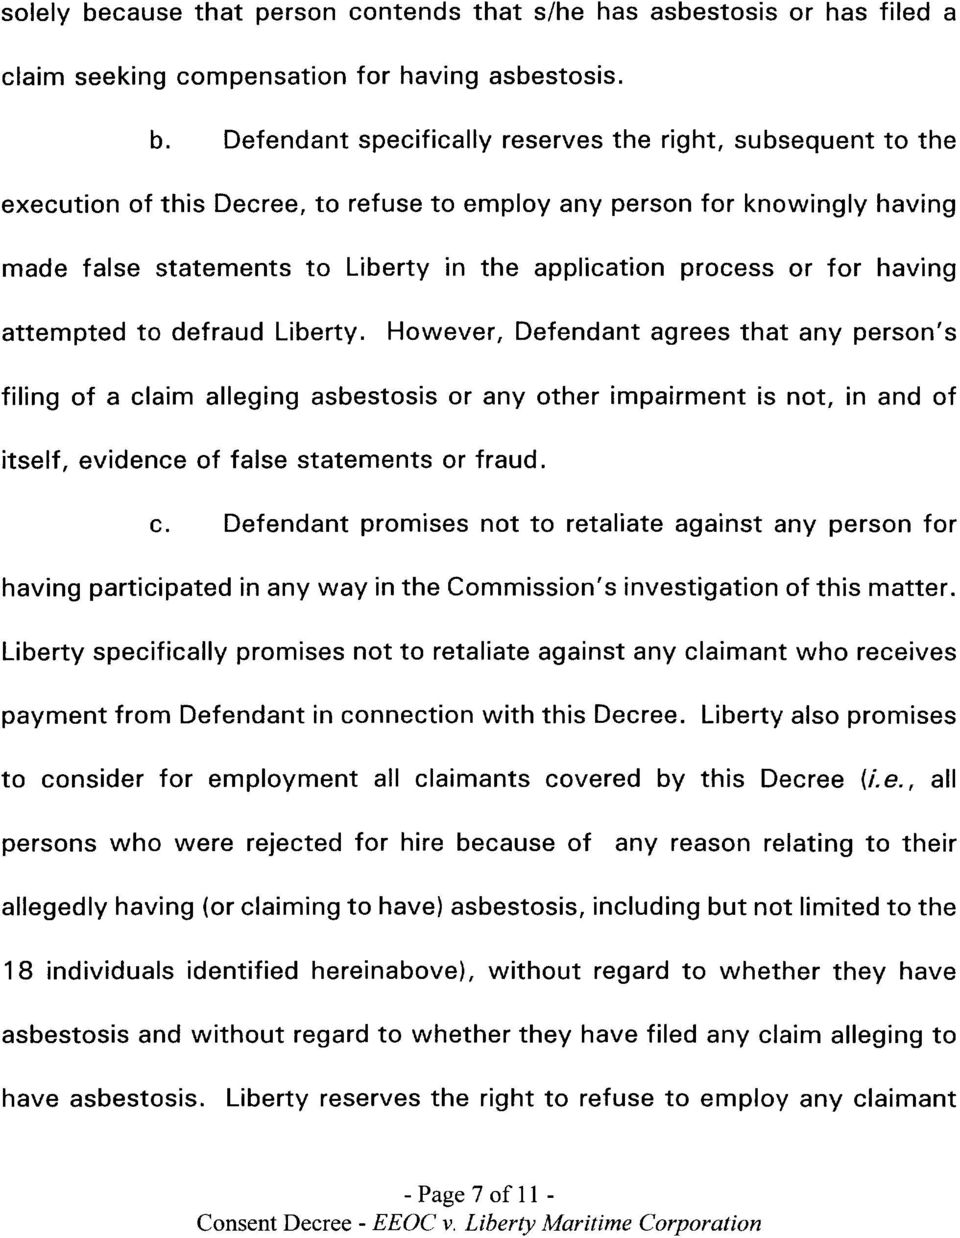 Defendant specifically reserves the right, subsequent to the execution of this Decree, to refuse to employ any person for knowingly having made false statements to Liberty in the application process